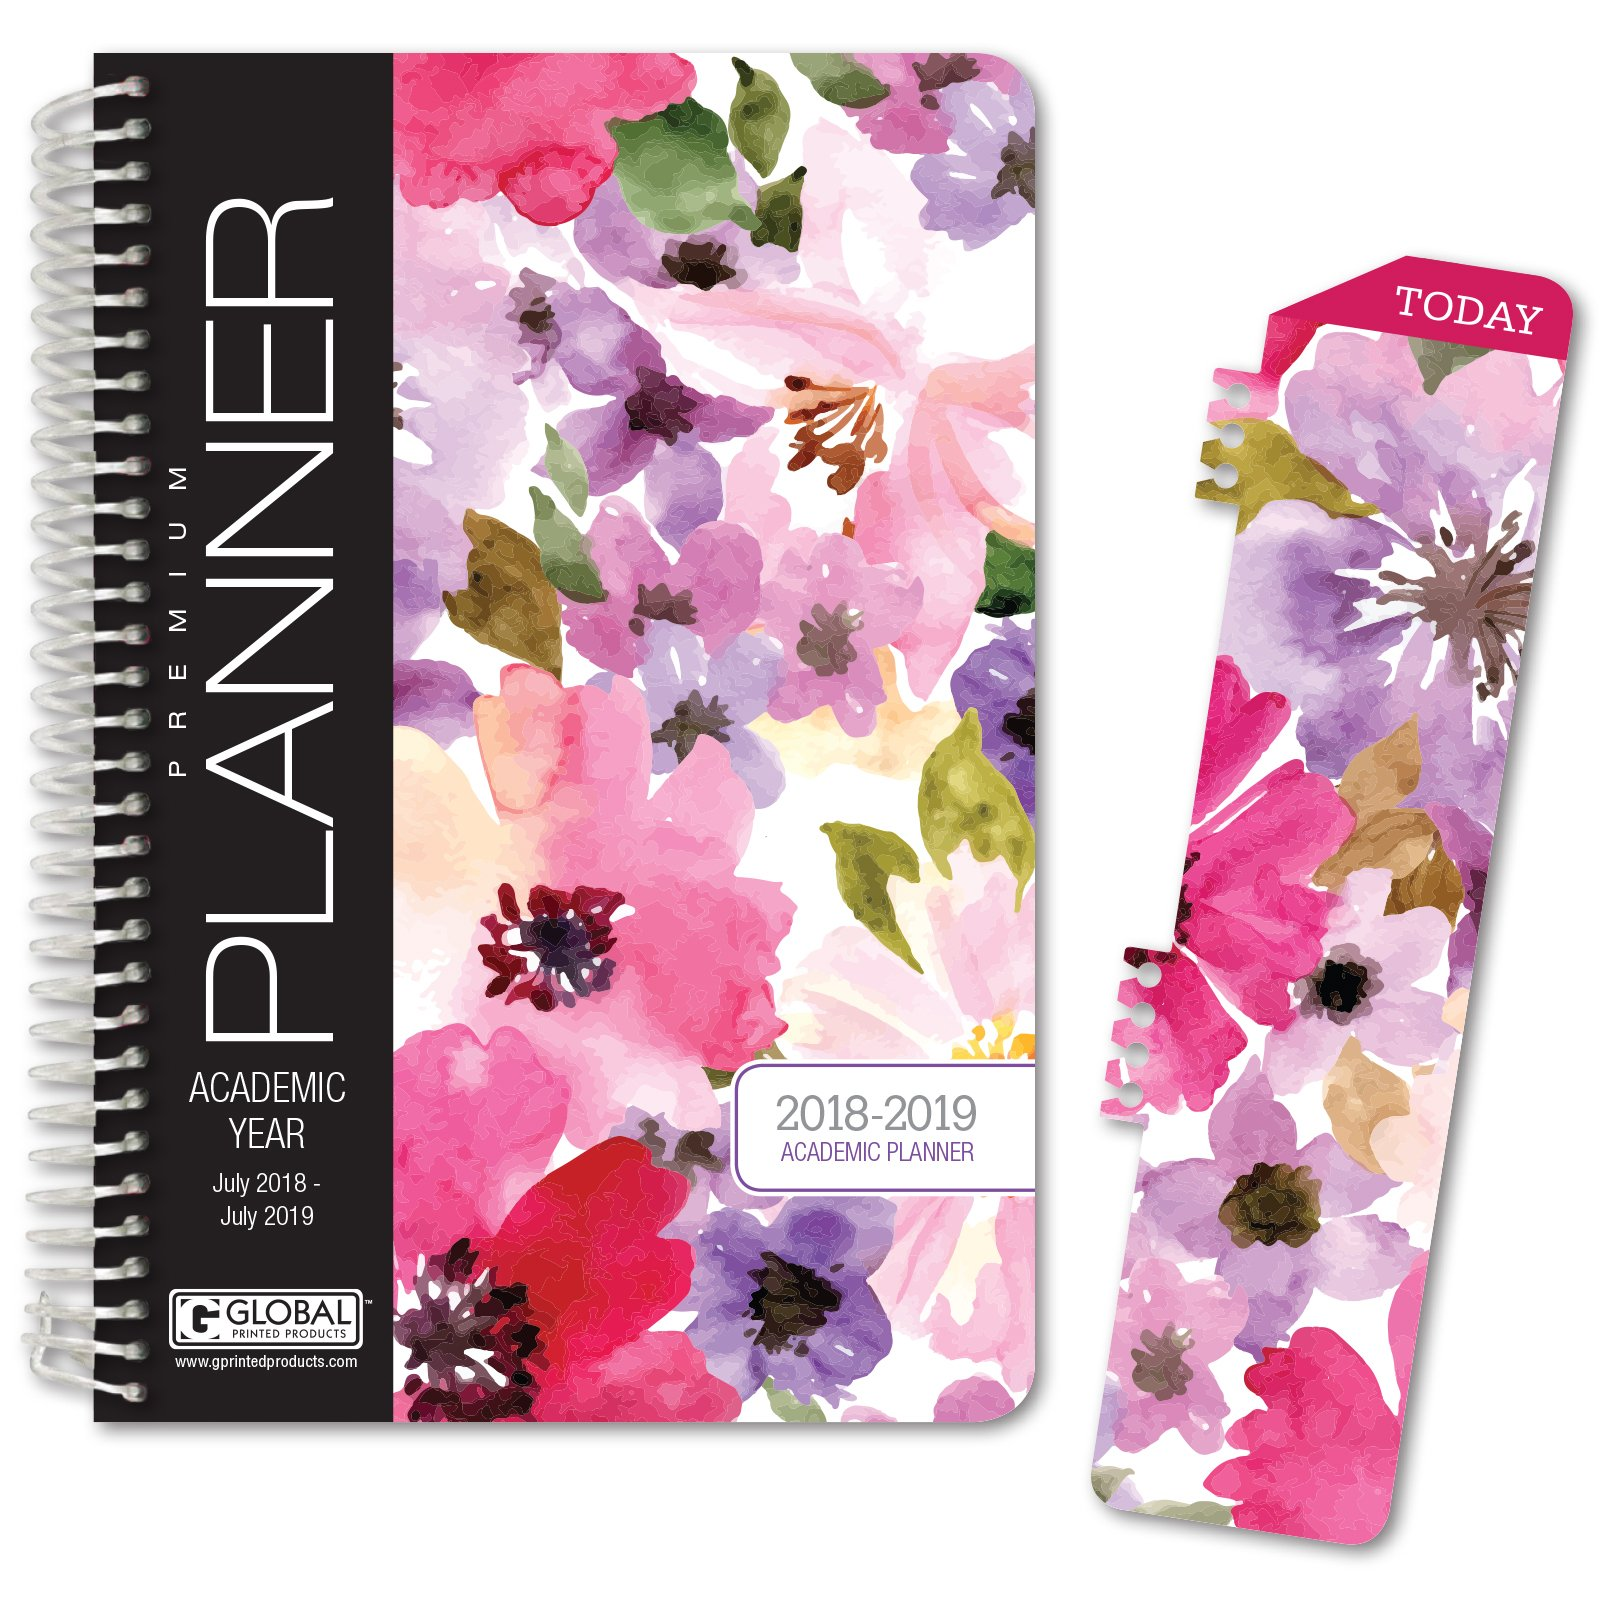 HARDCOVER Academic Year Planner 2018-2019 - 5.5''x8'' Daily Planner/Weekly Planner/Monthly Planner/Yearly Agenda. Bonus Bookmark (Spring Floral)